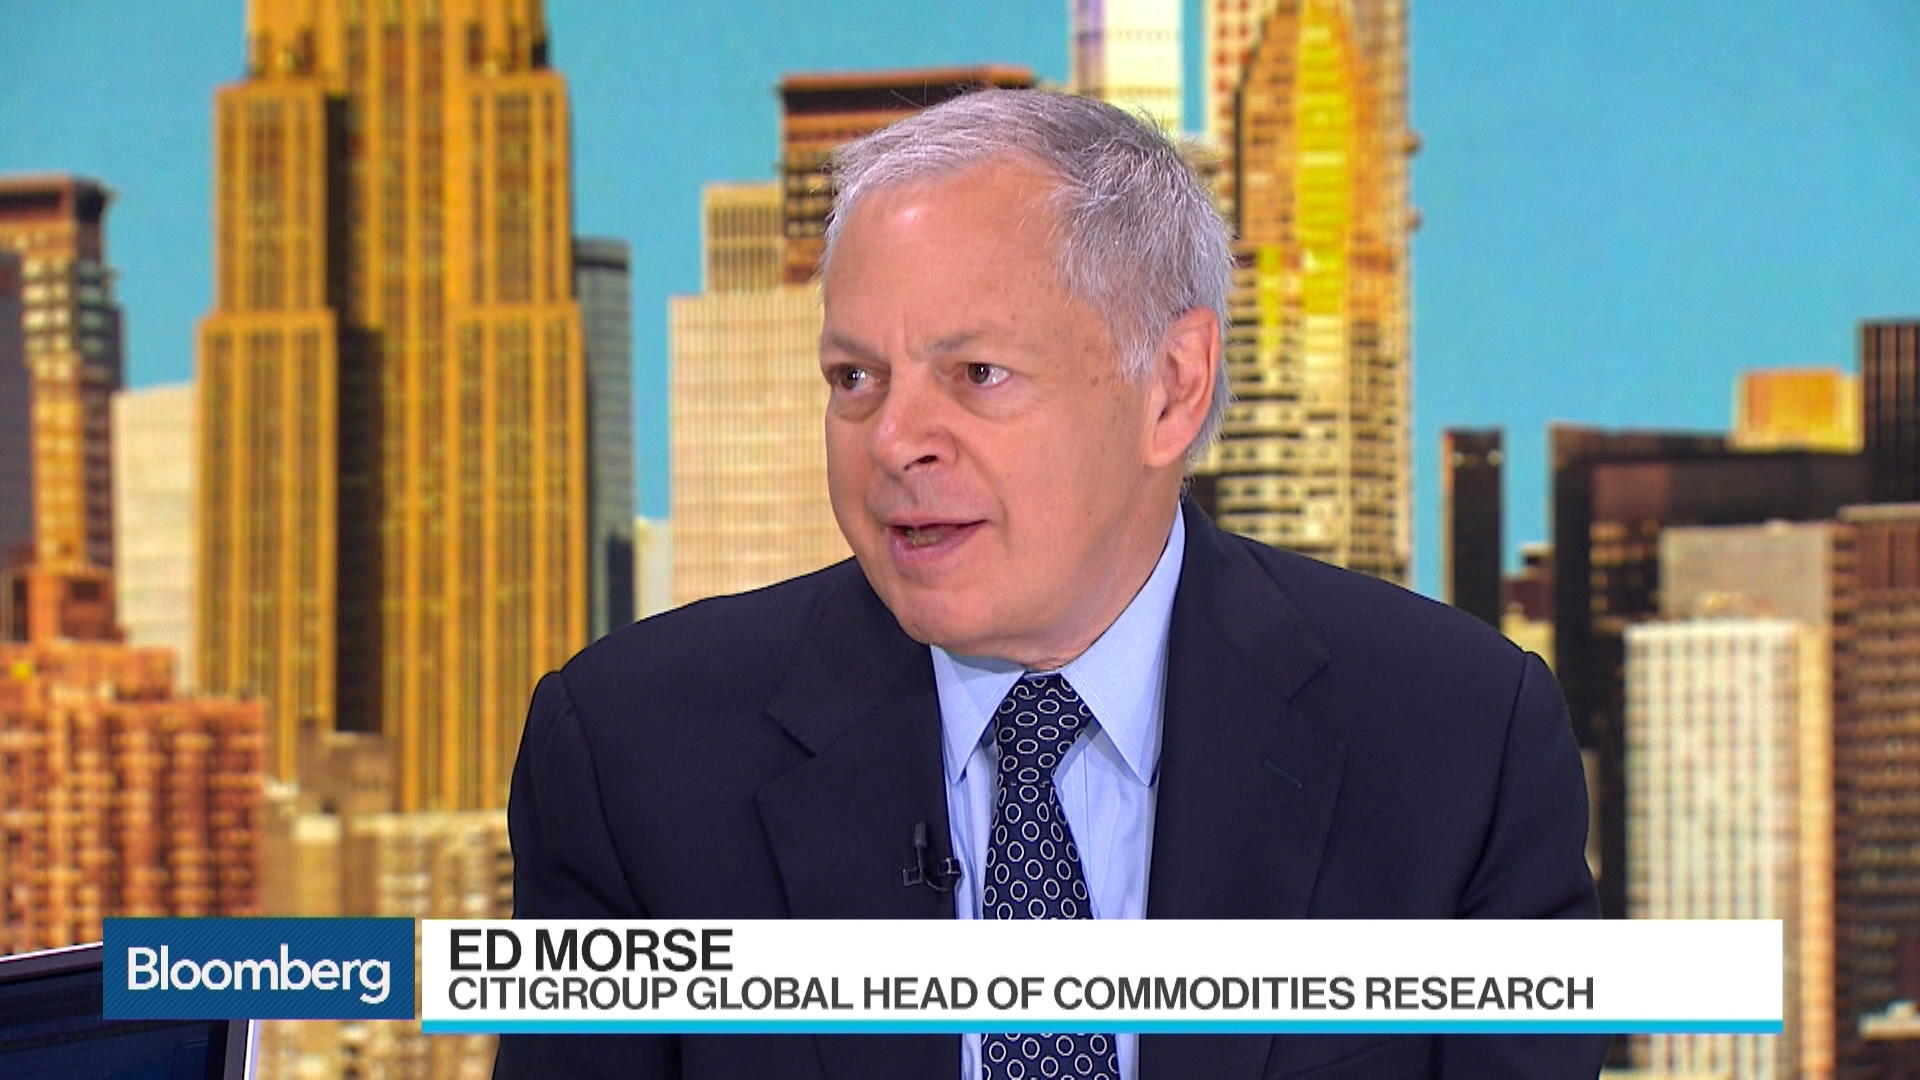 Ed Morse: Mideast Can Thrive With Oil Price Below $70